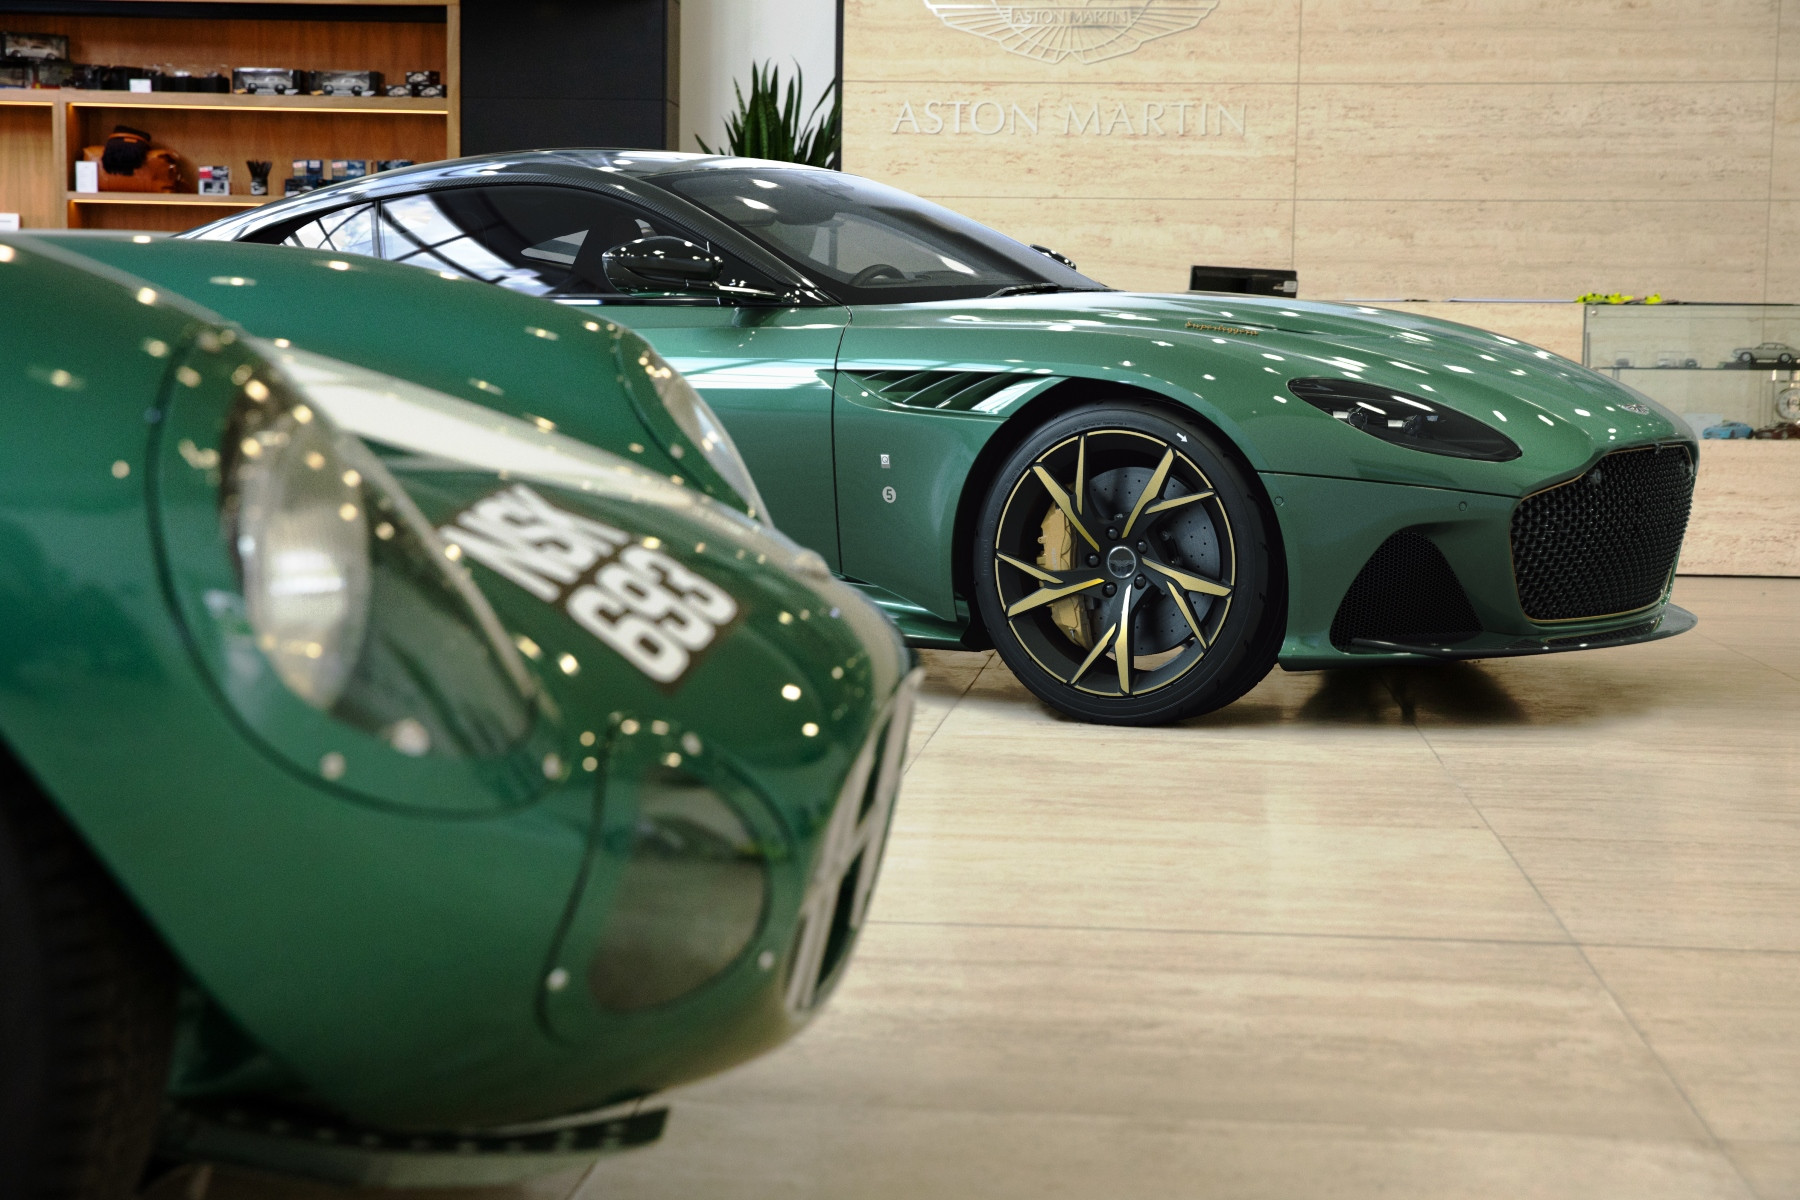 Aston Martin Dbs 59 Celebrates Historic Le Mans Win